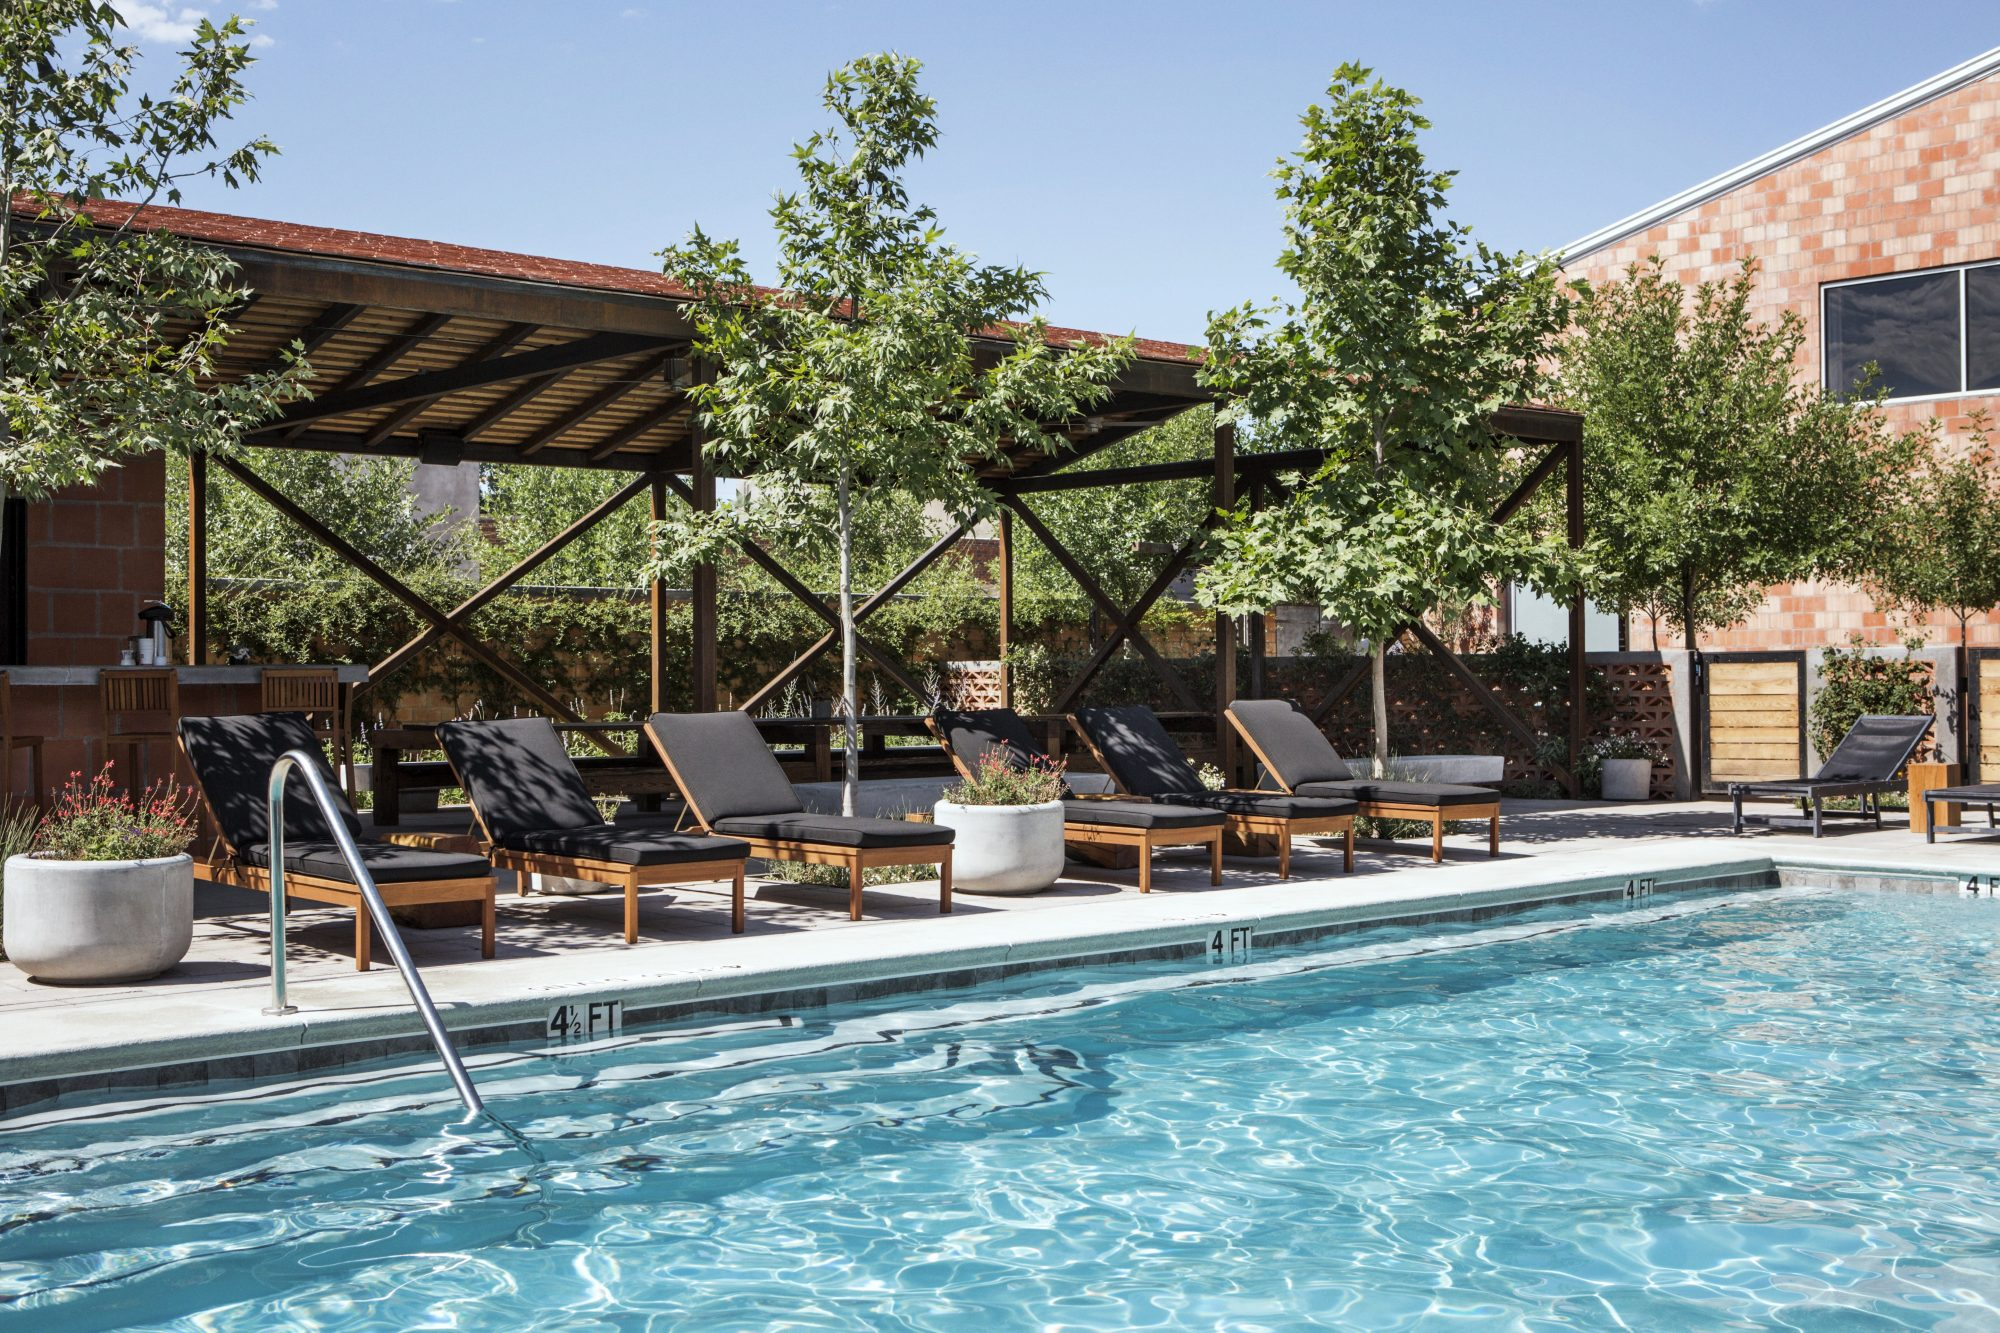 Why This Hotel Pool is Worth a Trip to This Tiny Texas Town